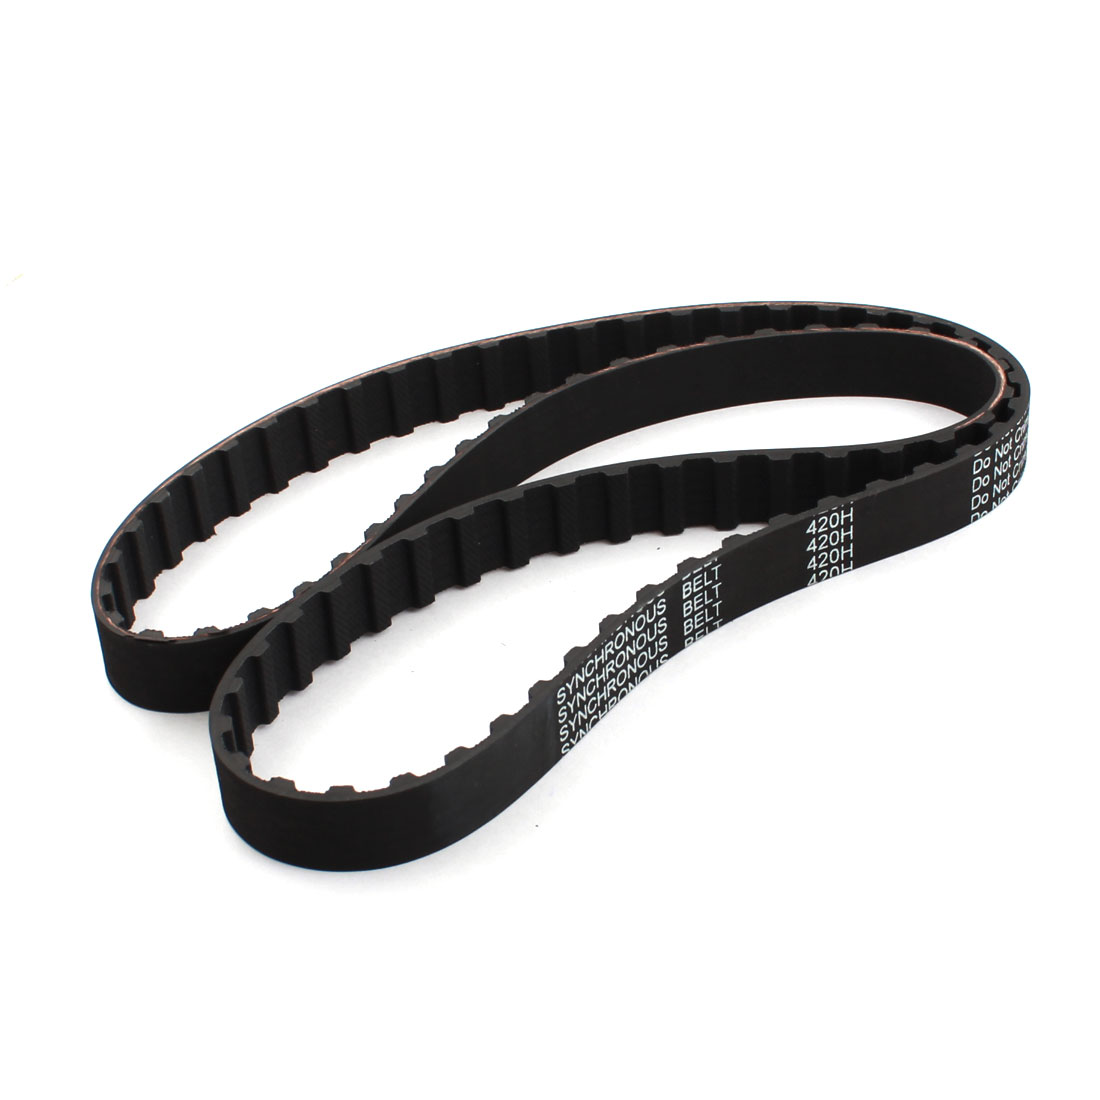 420H 075 84-Teeth 12.7mm Pitch 19.1mm Width Single Side Black Groove Industrial Stepper Motor Synchronous Timing Belt 42""